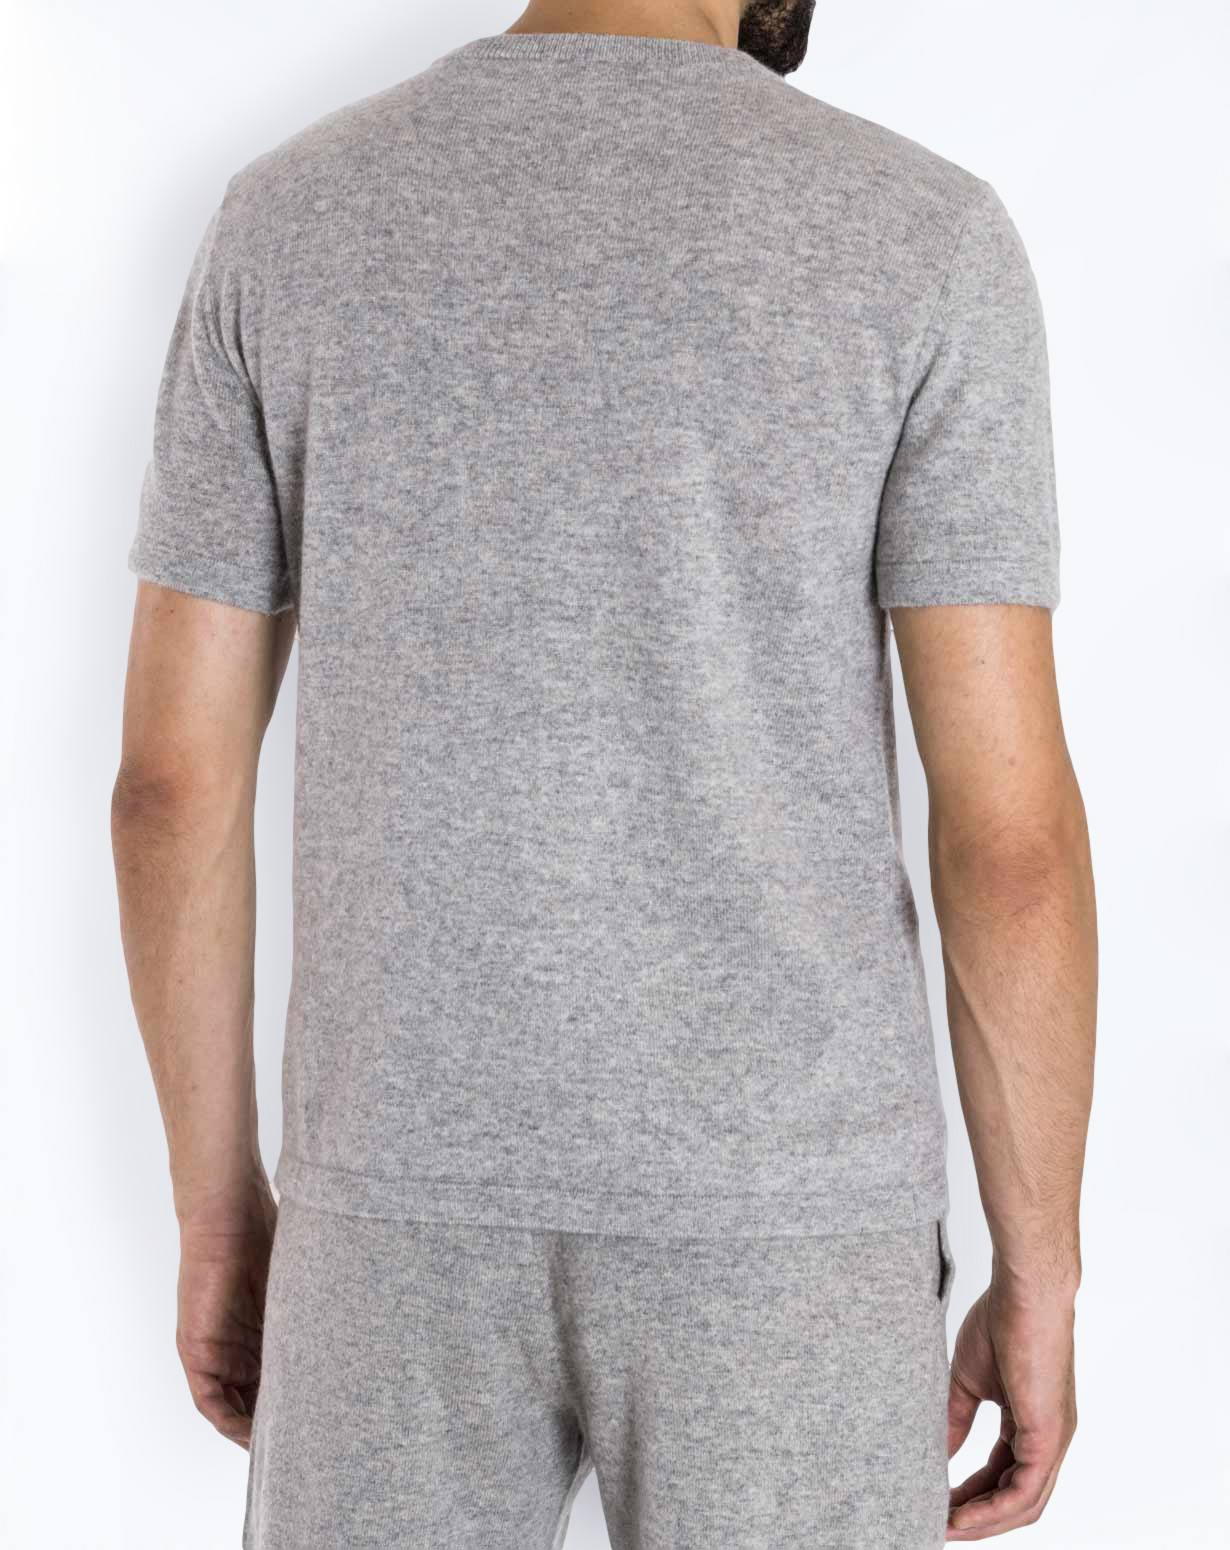 Cashmere Tee, to mix and match